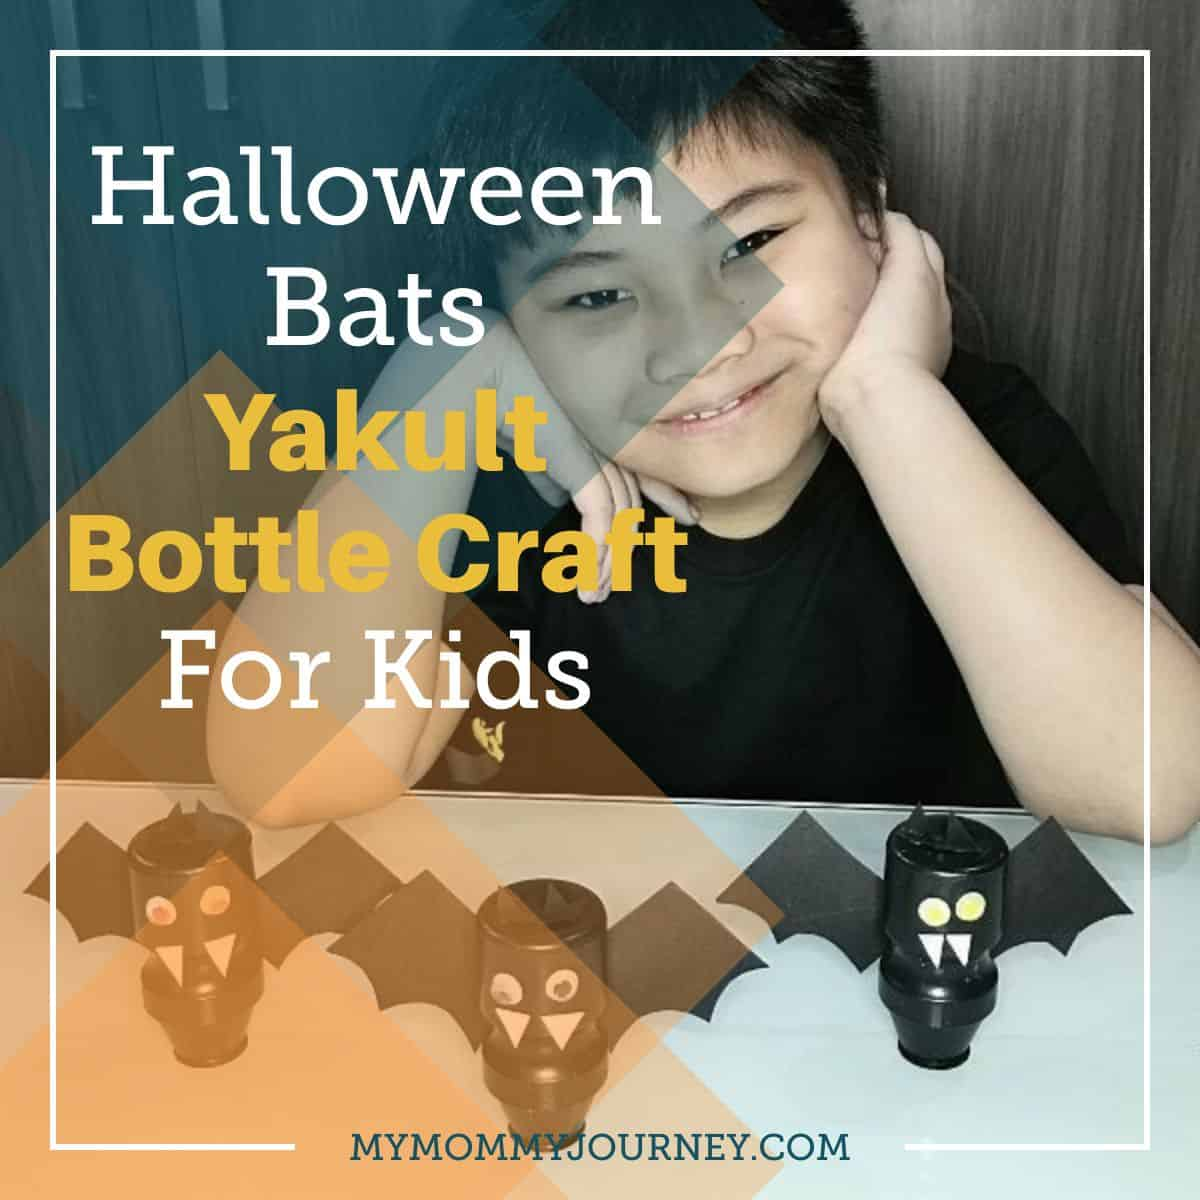 Halloween Bats Yakult Bottle Craft for Kids